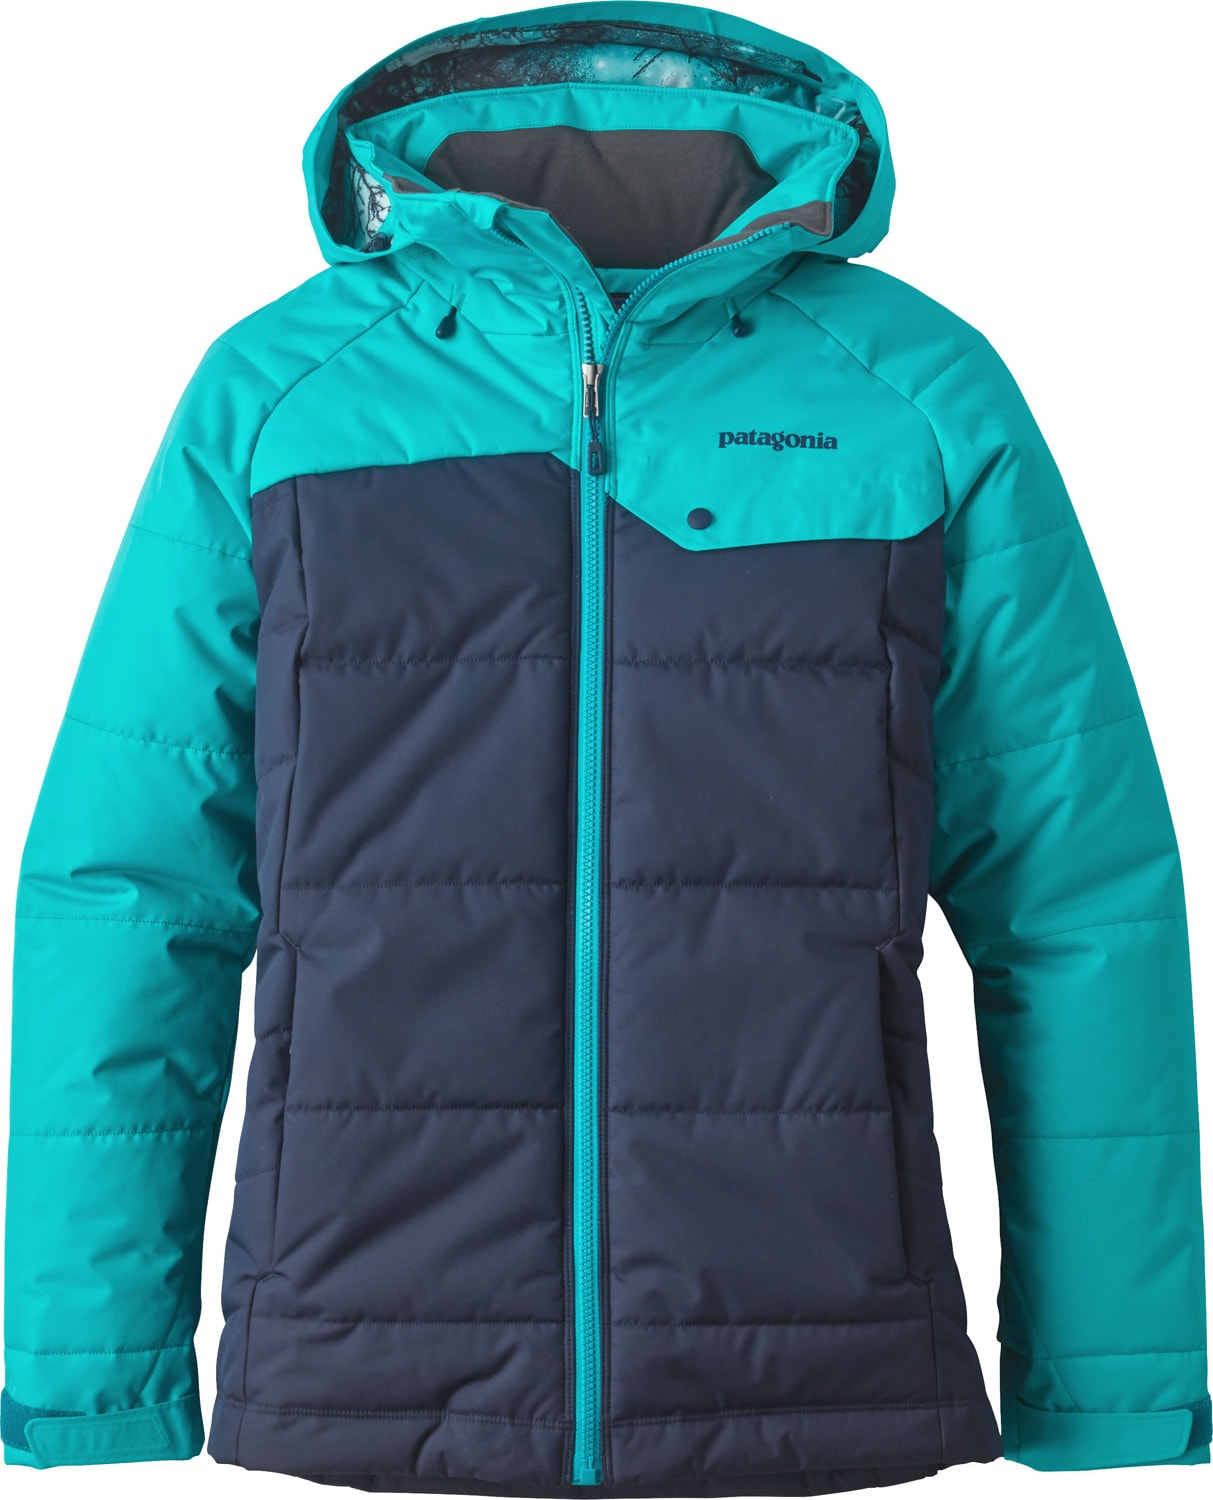 Patagonia Rubicon Ski Jacket Womens